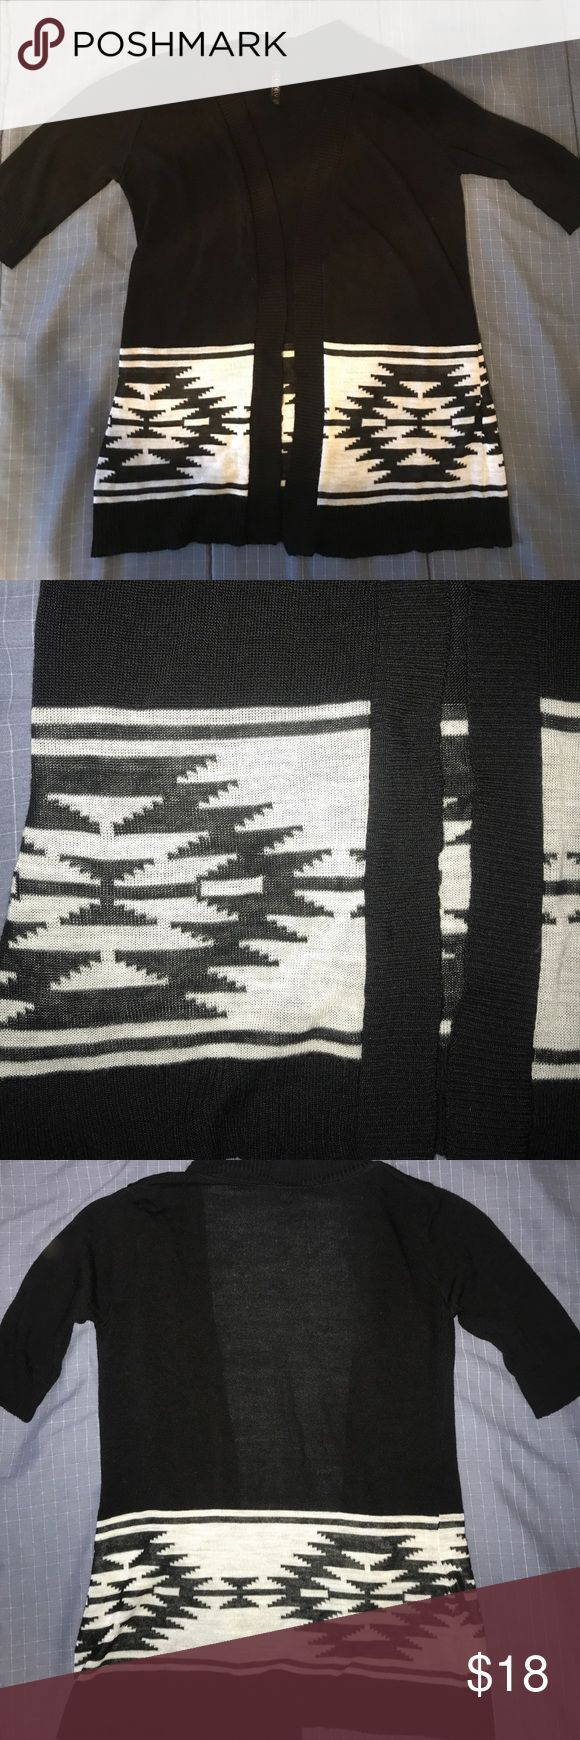 Absolutely Aztec print cardigan Absolutely Aztec print cardigan. Black and white open front cardigan. Longer short sleeved. A little above elbow. Colors may vary slightly from pictures. Absolutely Creative Worldwide Sweaters Cardigans